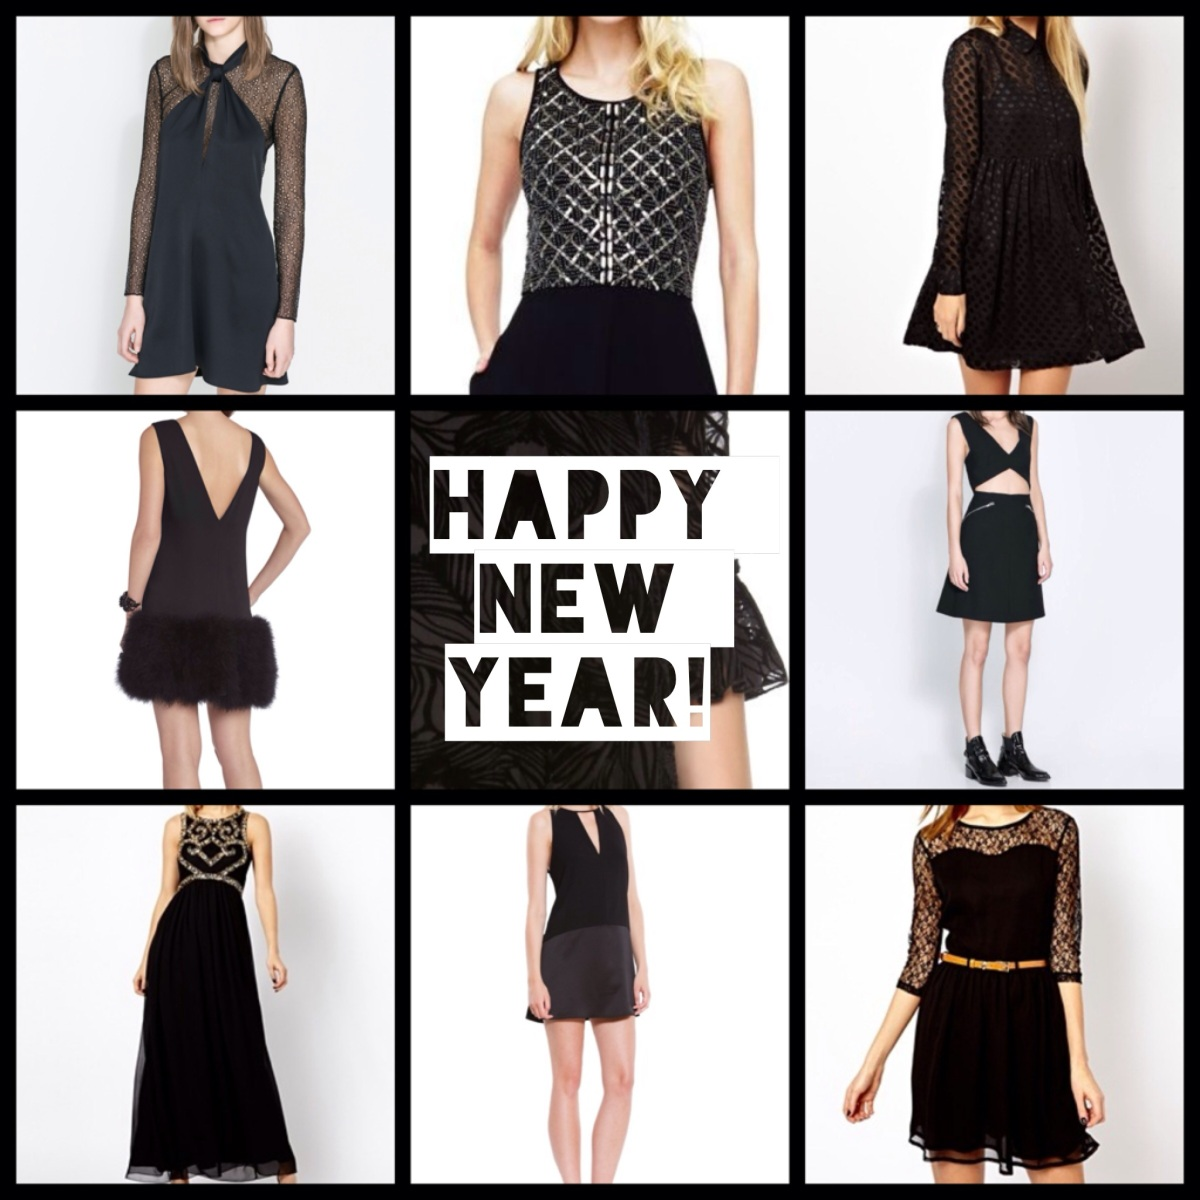 Current Obsession: An LBD for NYE